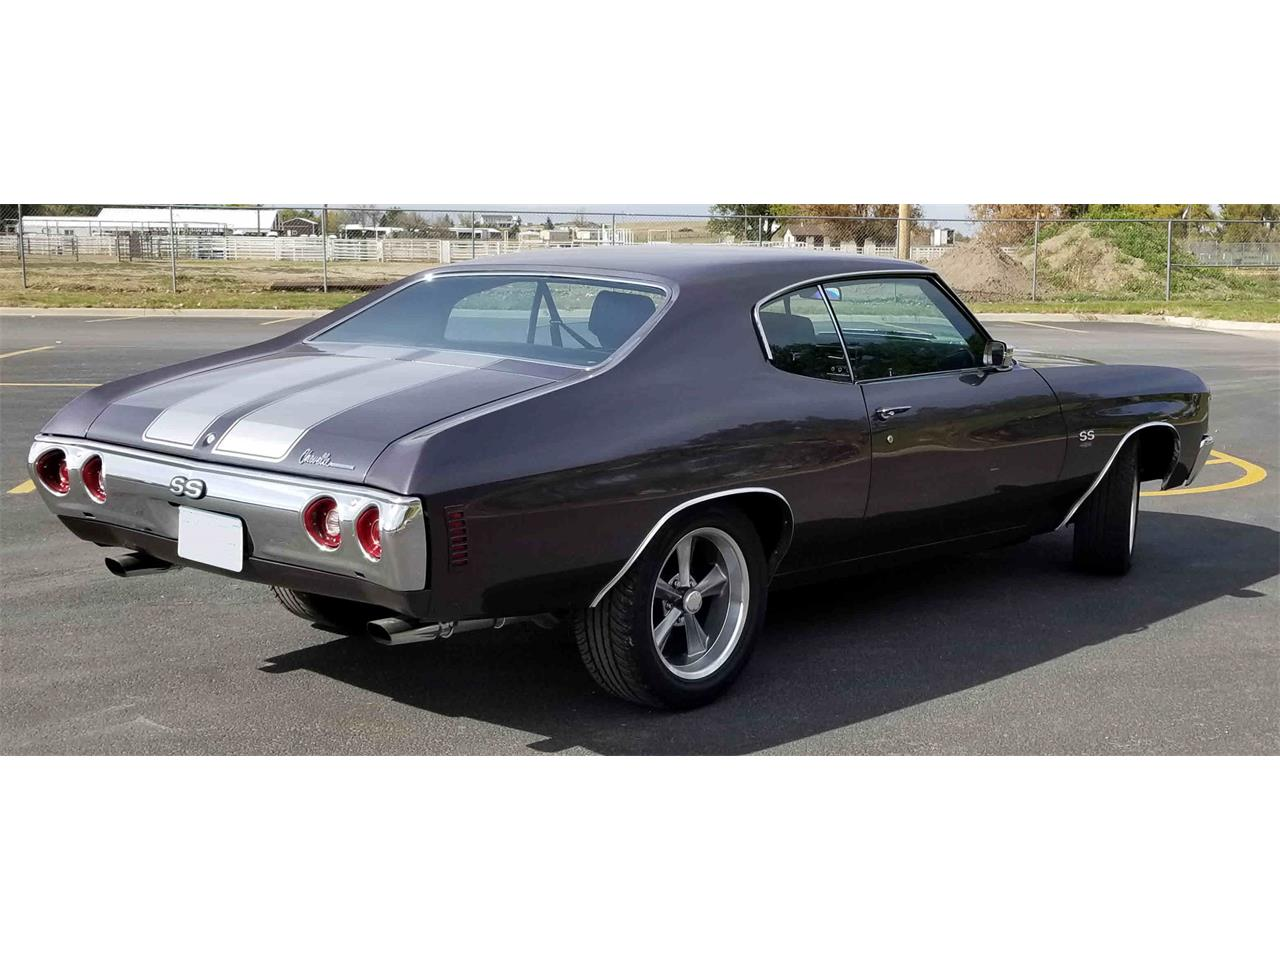 Large Picture of 1972 Chevelle SS located in South Dakota - $35,000.00 Offered by a Private Seller - OW11